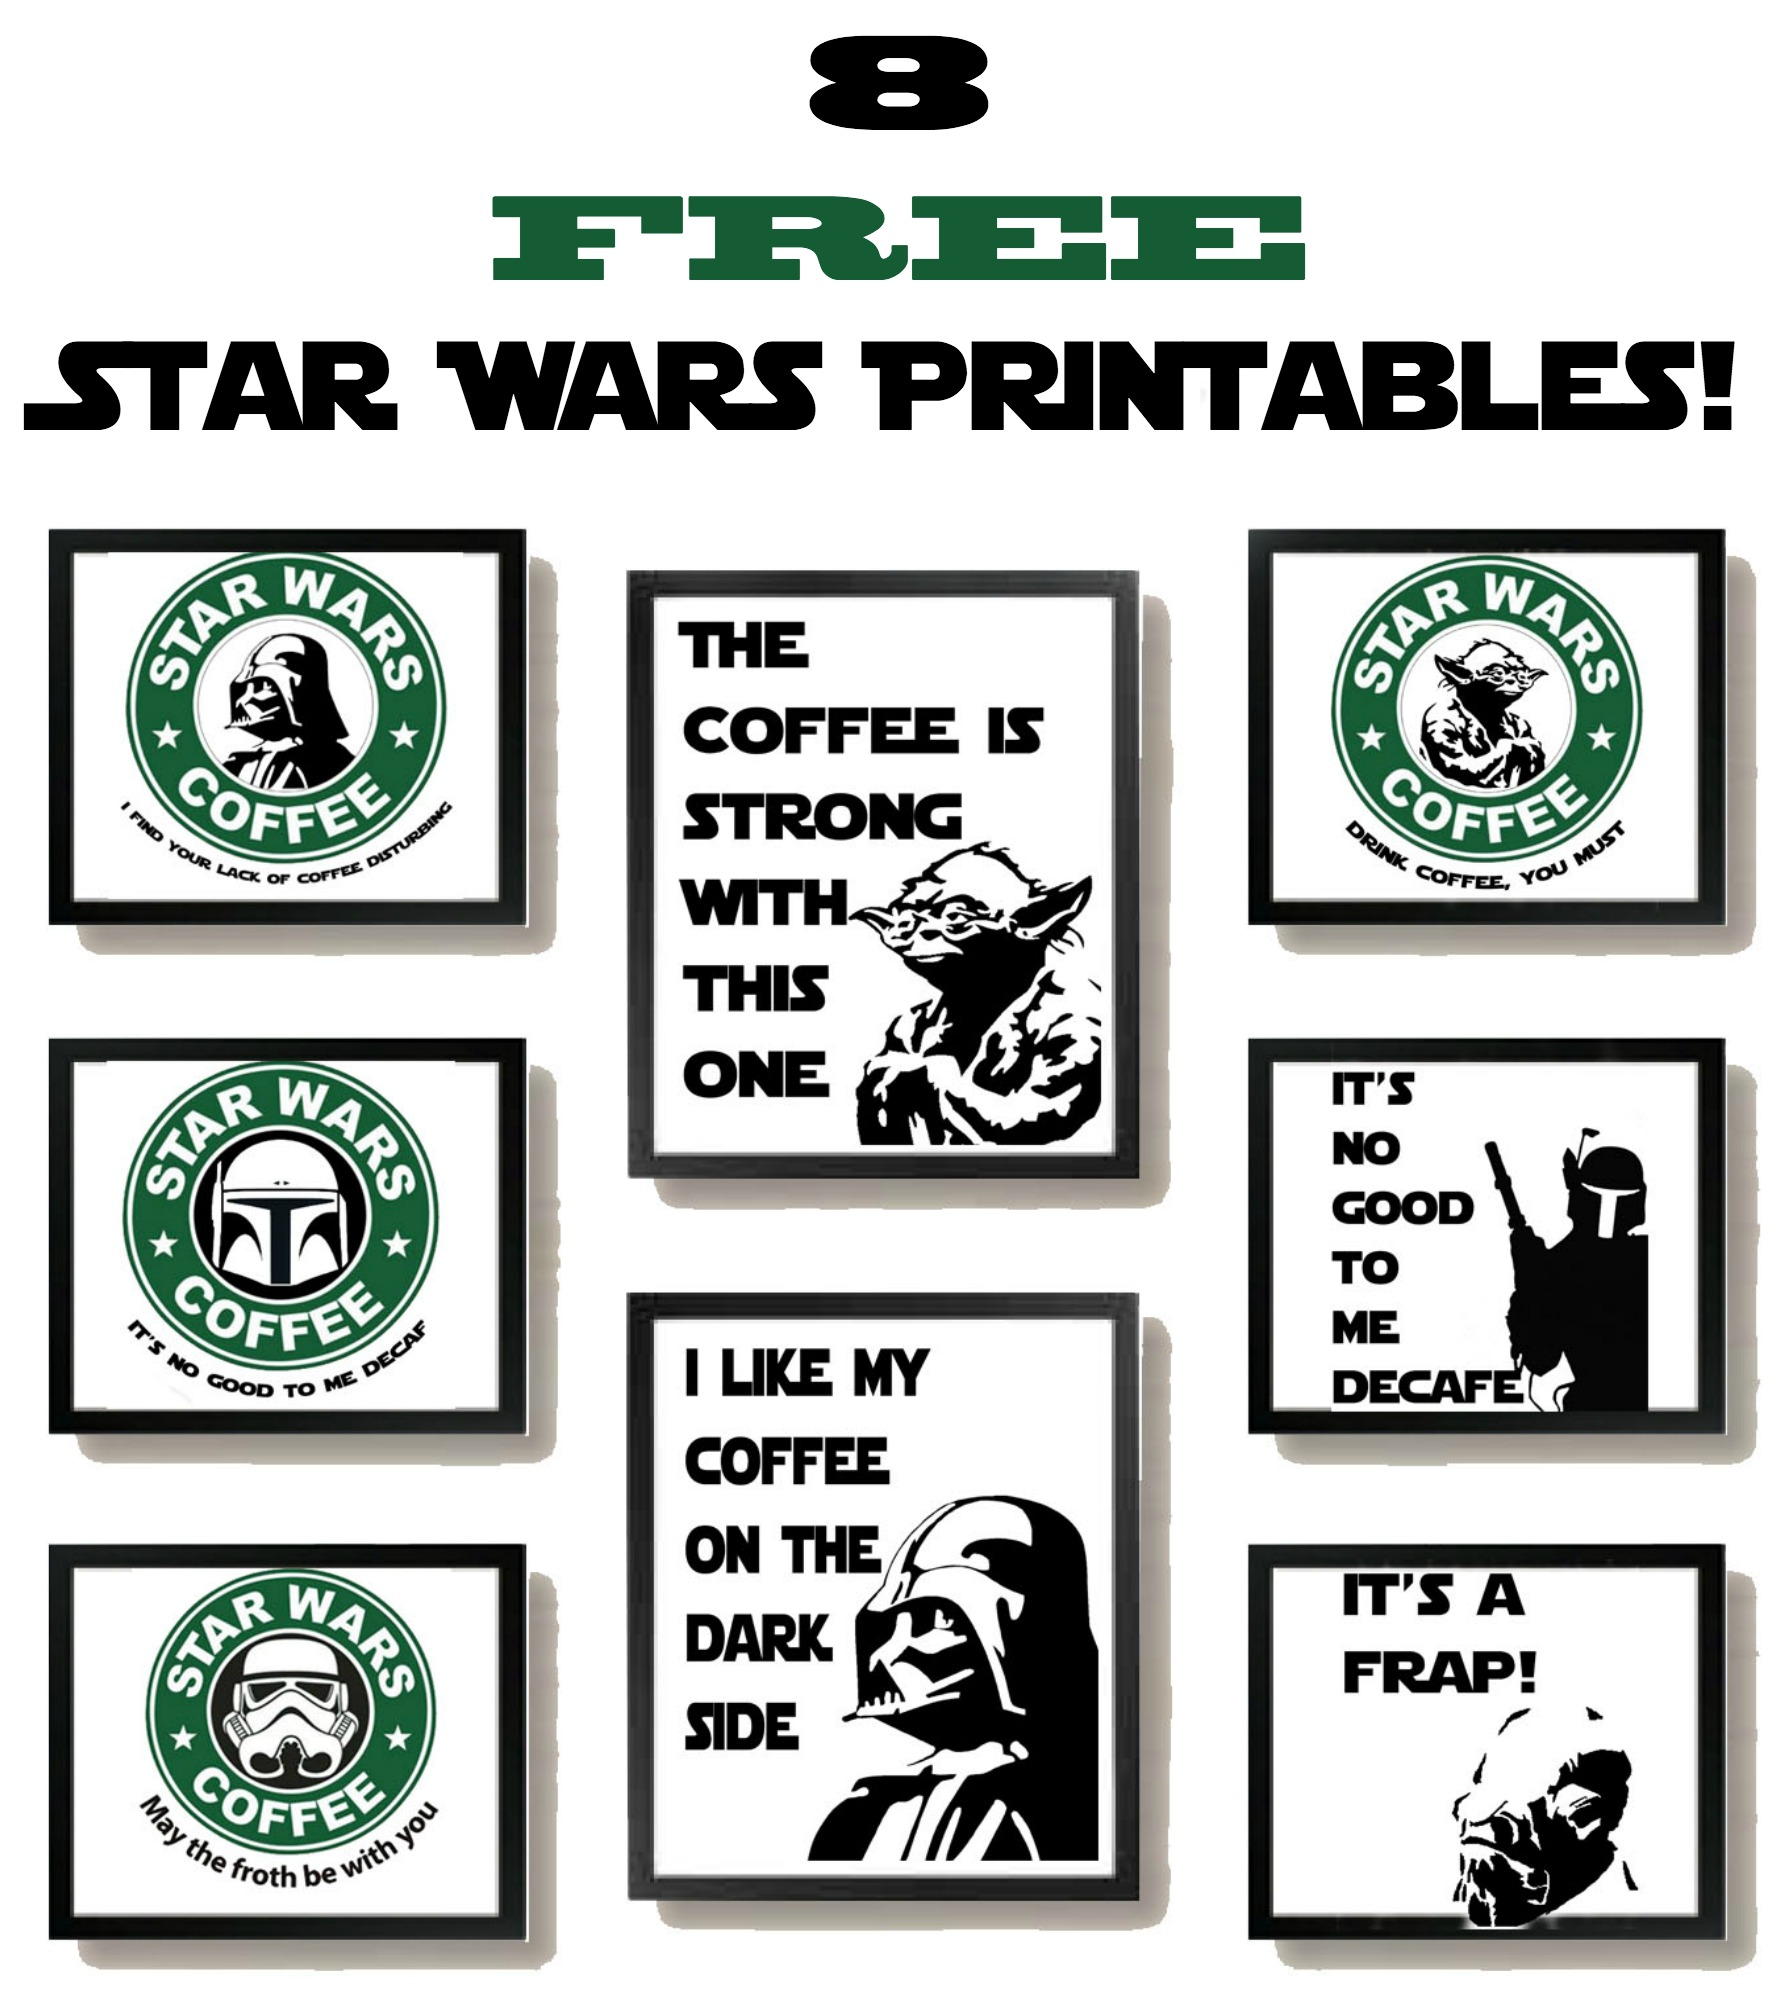 photo regarding Printable Star Wars Images referred to as Free of charge Star Wars Printables with a Espresso Topic! - Some of